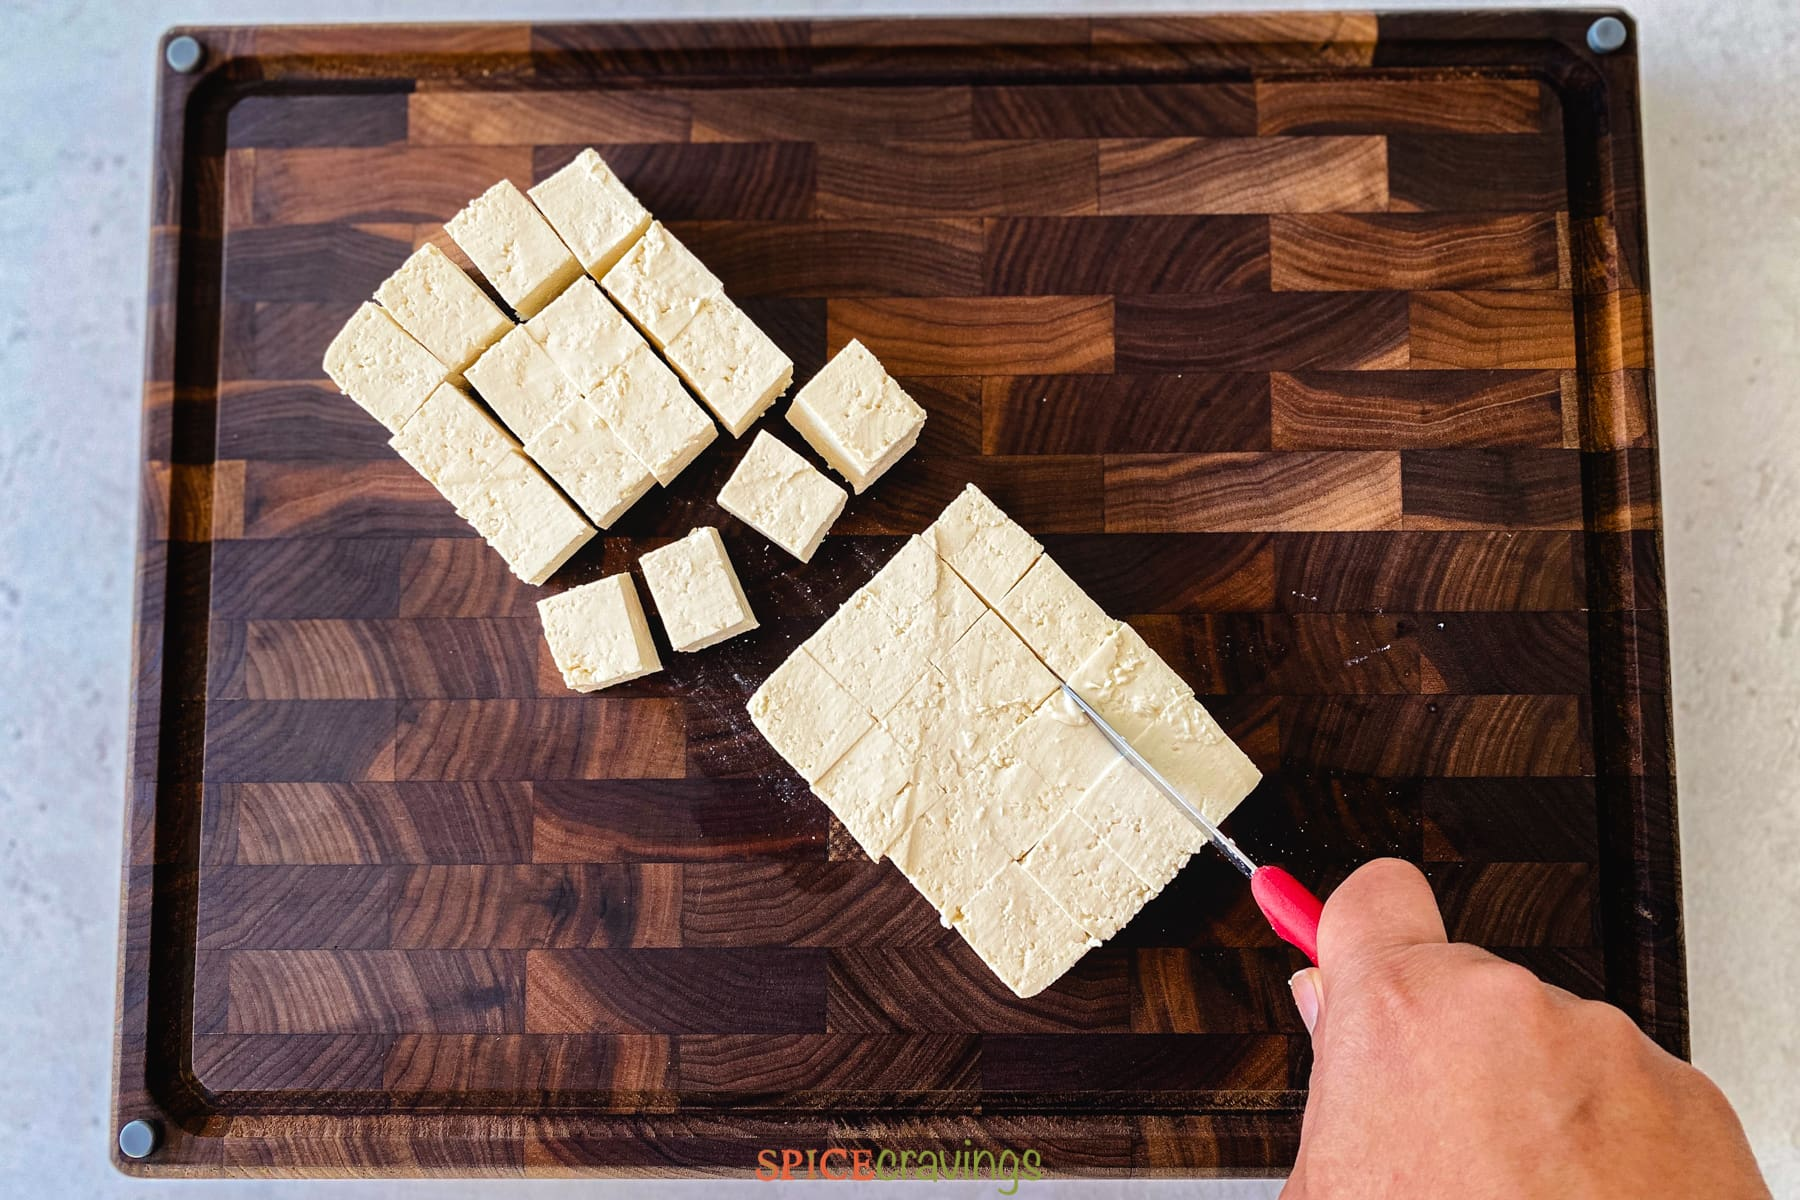 A hand slicing tofu into cubes on a cutting board